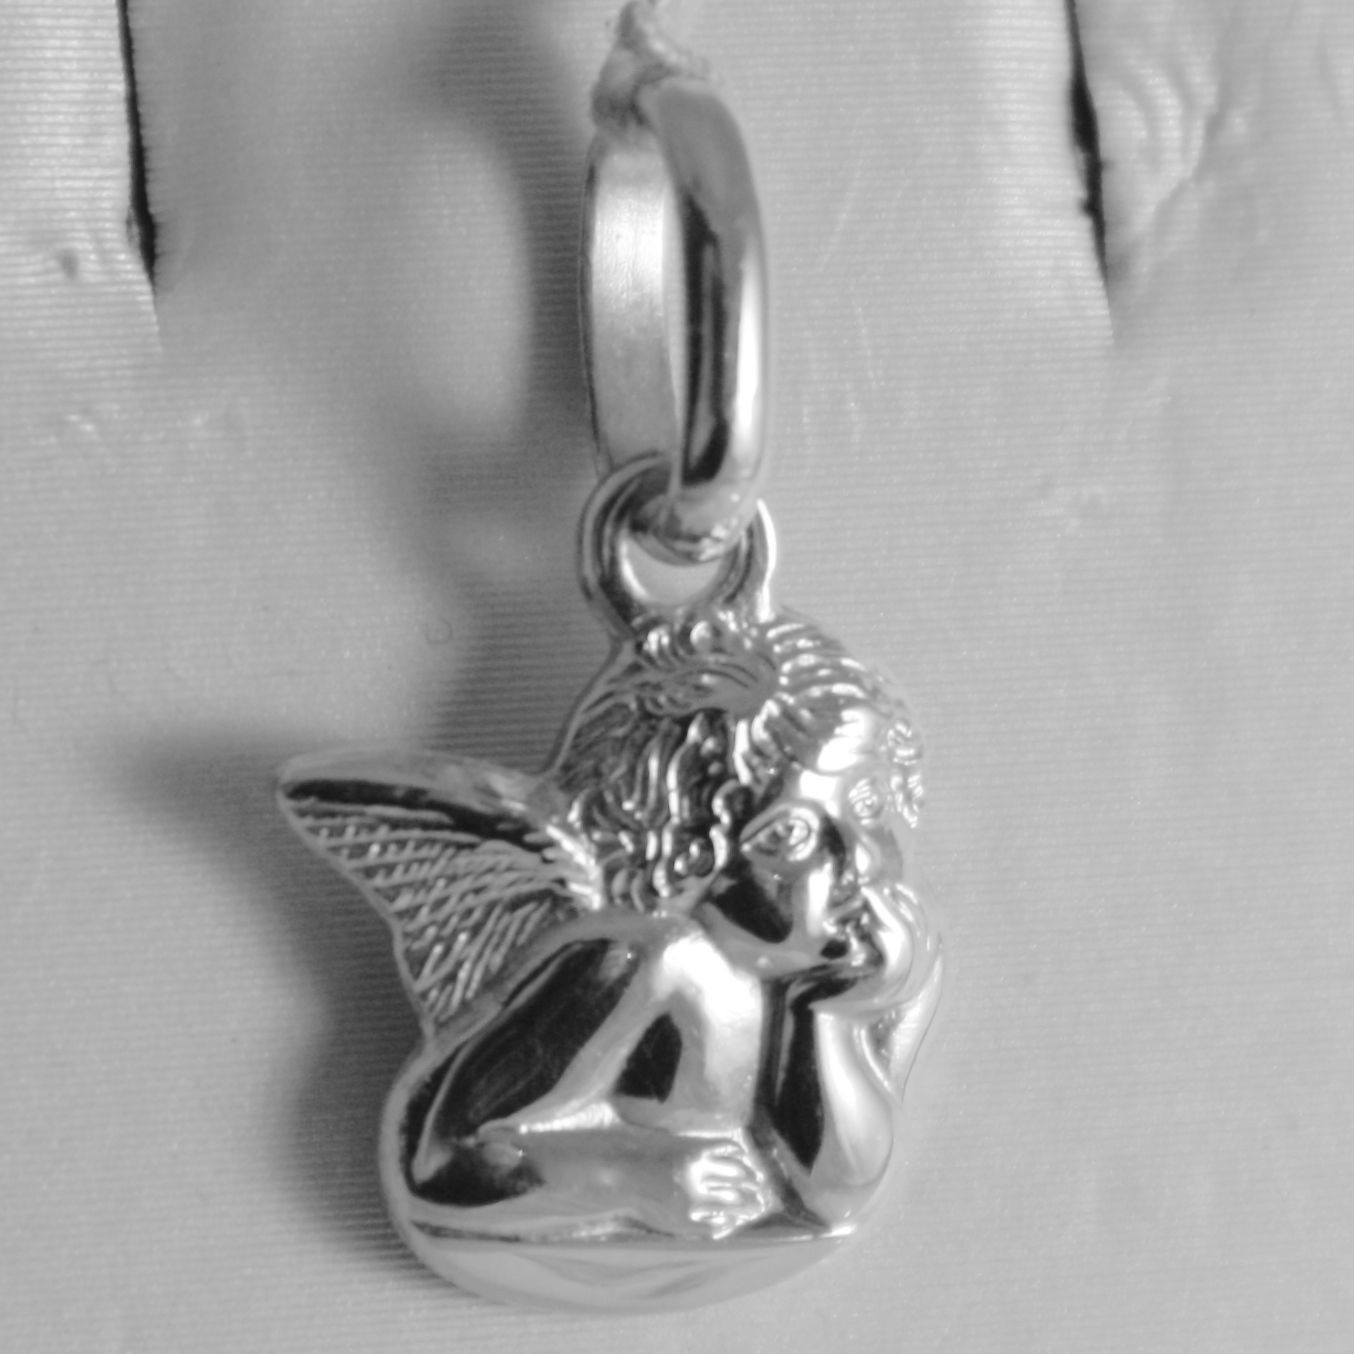 SOLID 18K WHITE GOLD PENDANT, LITTLE GUARDIAN ANGEL, ENGRAVING, MADE IN ITALY